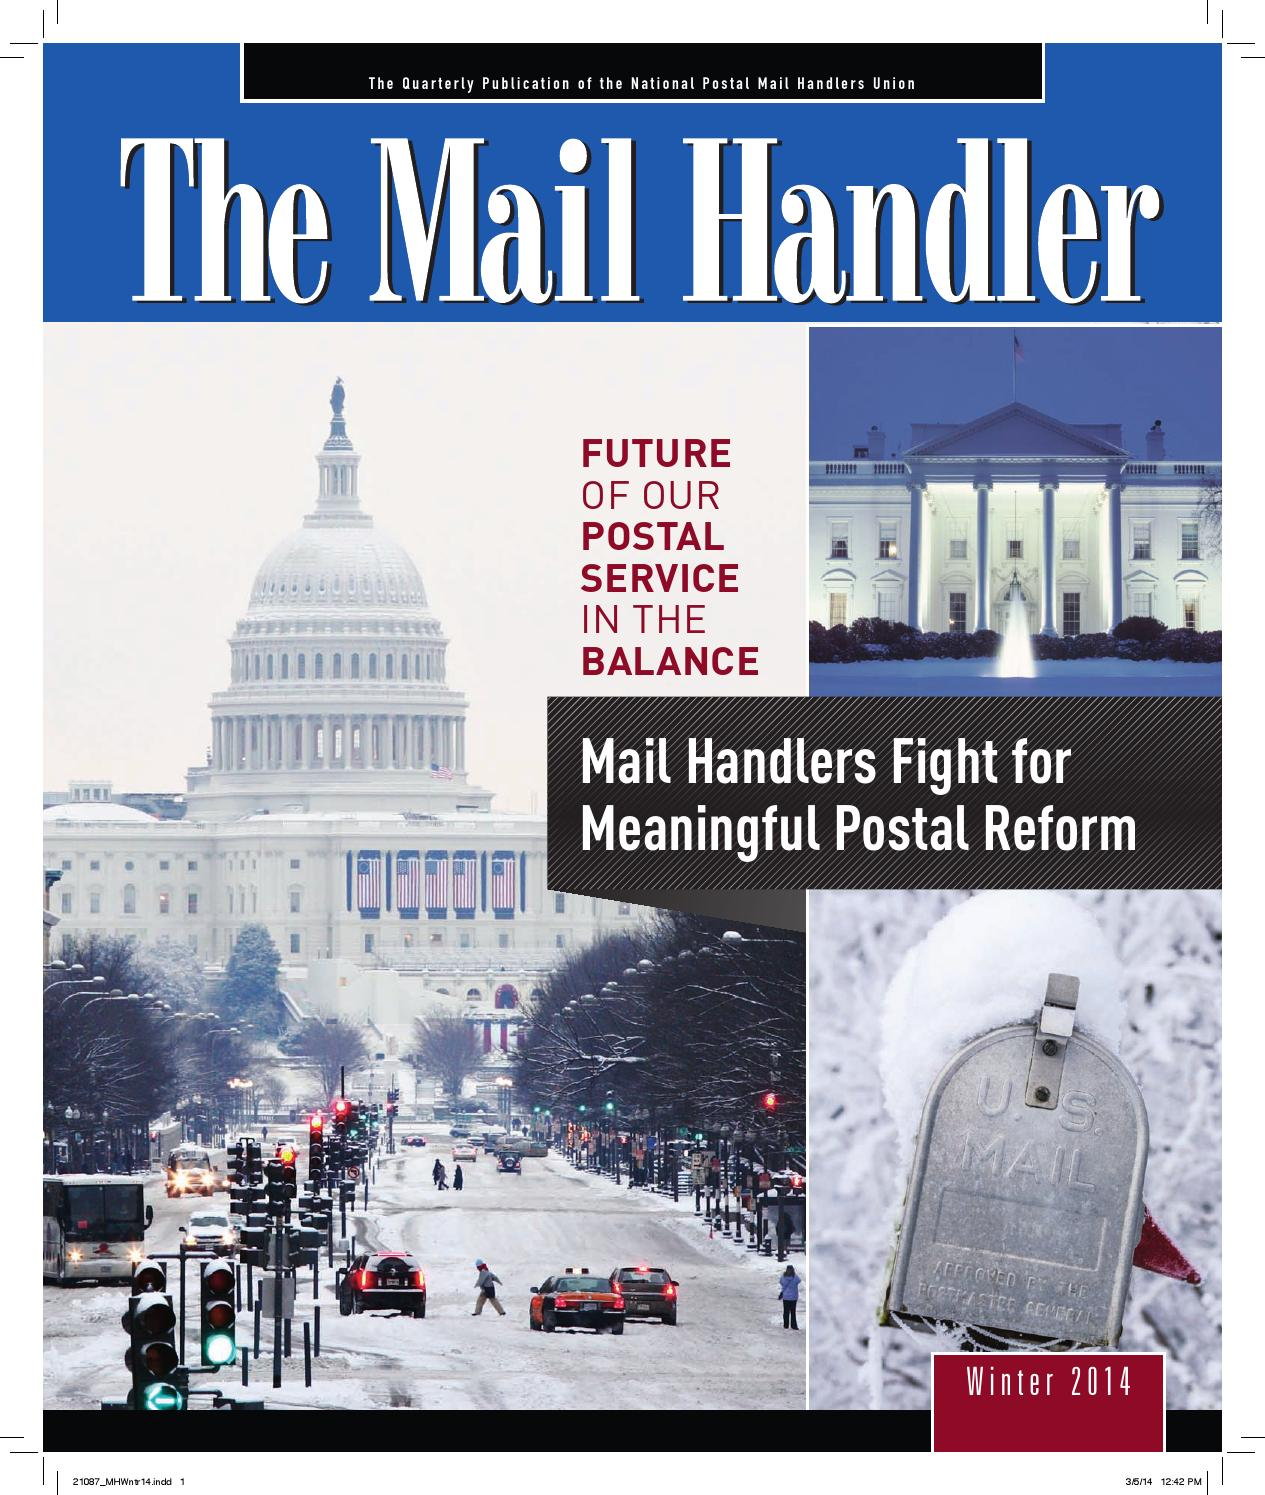 the mail handlernational postal mail handlers union - issuu